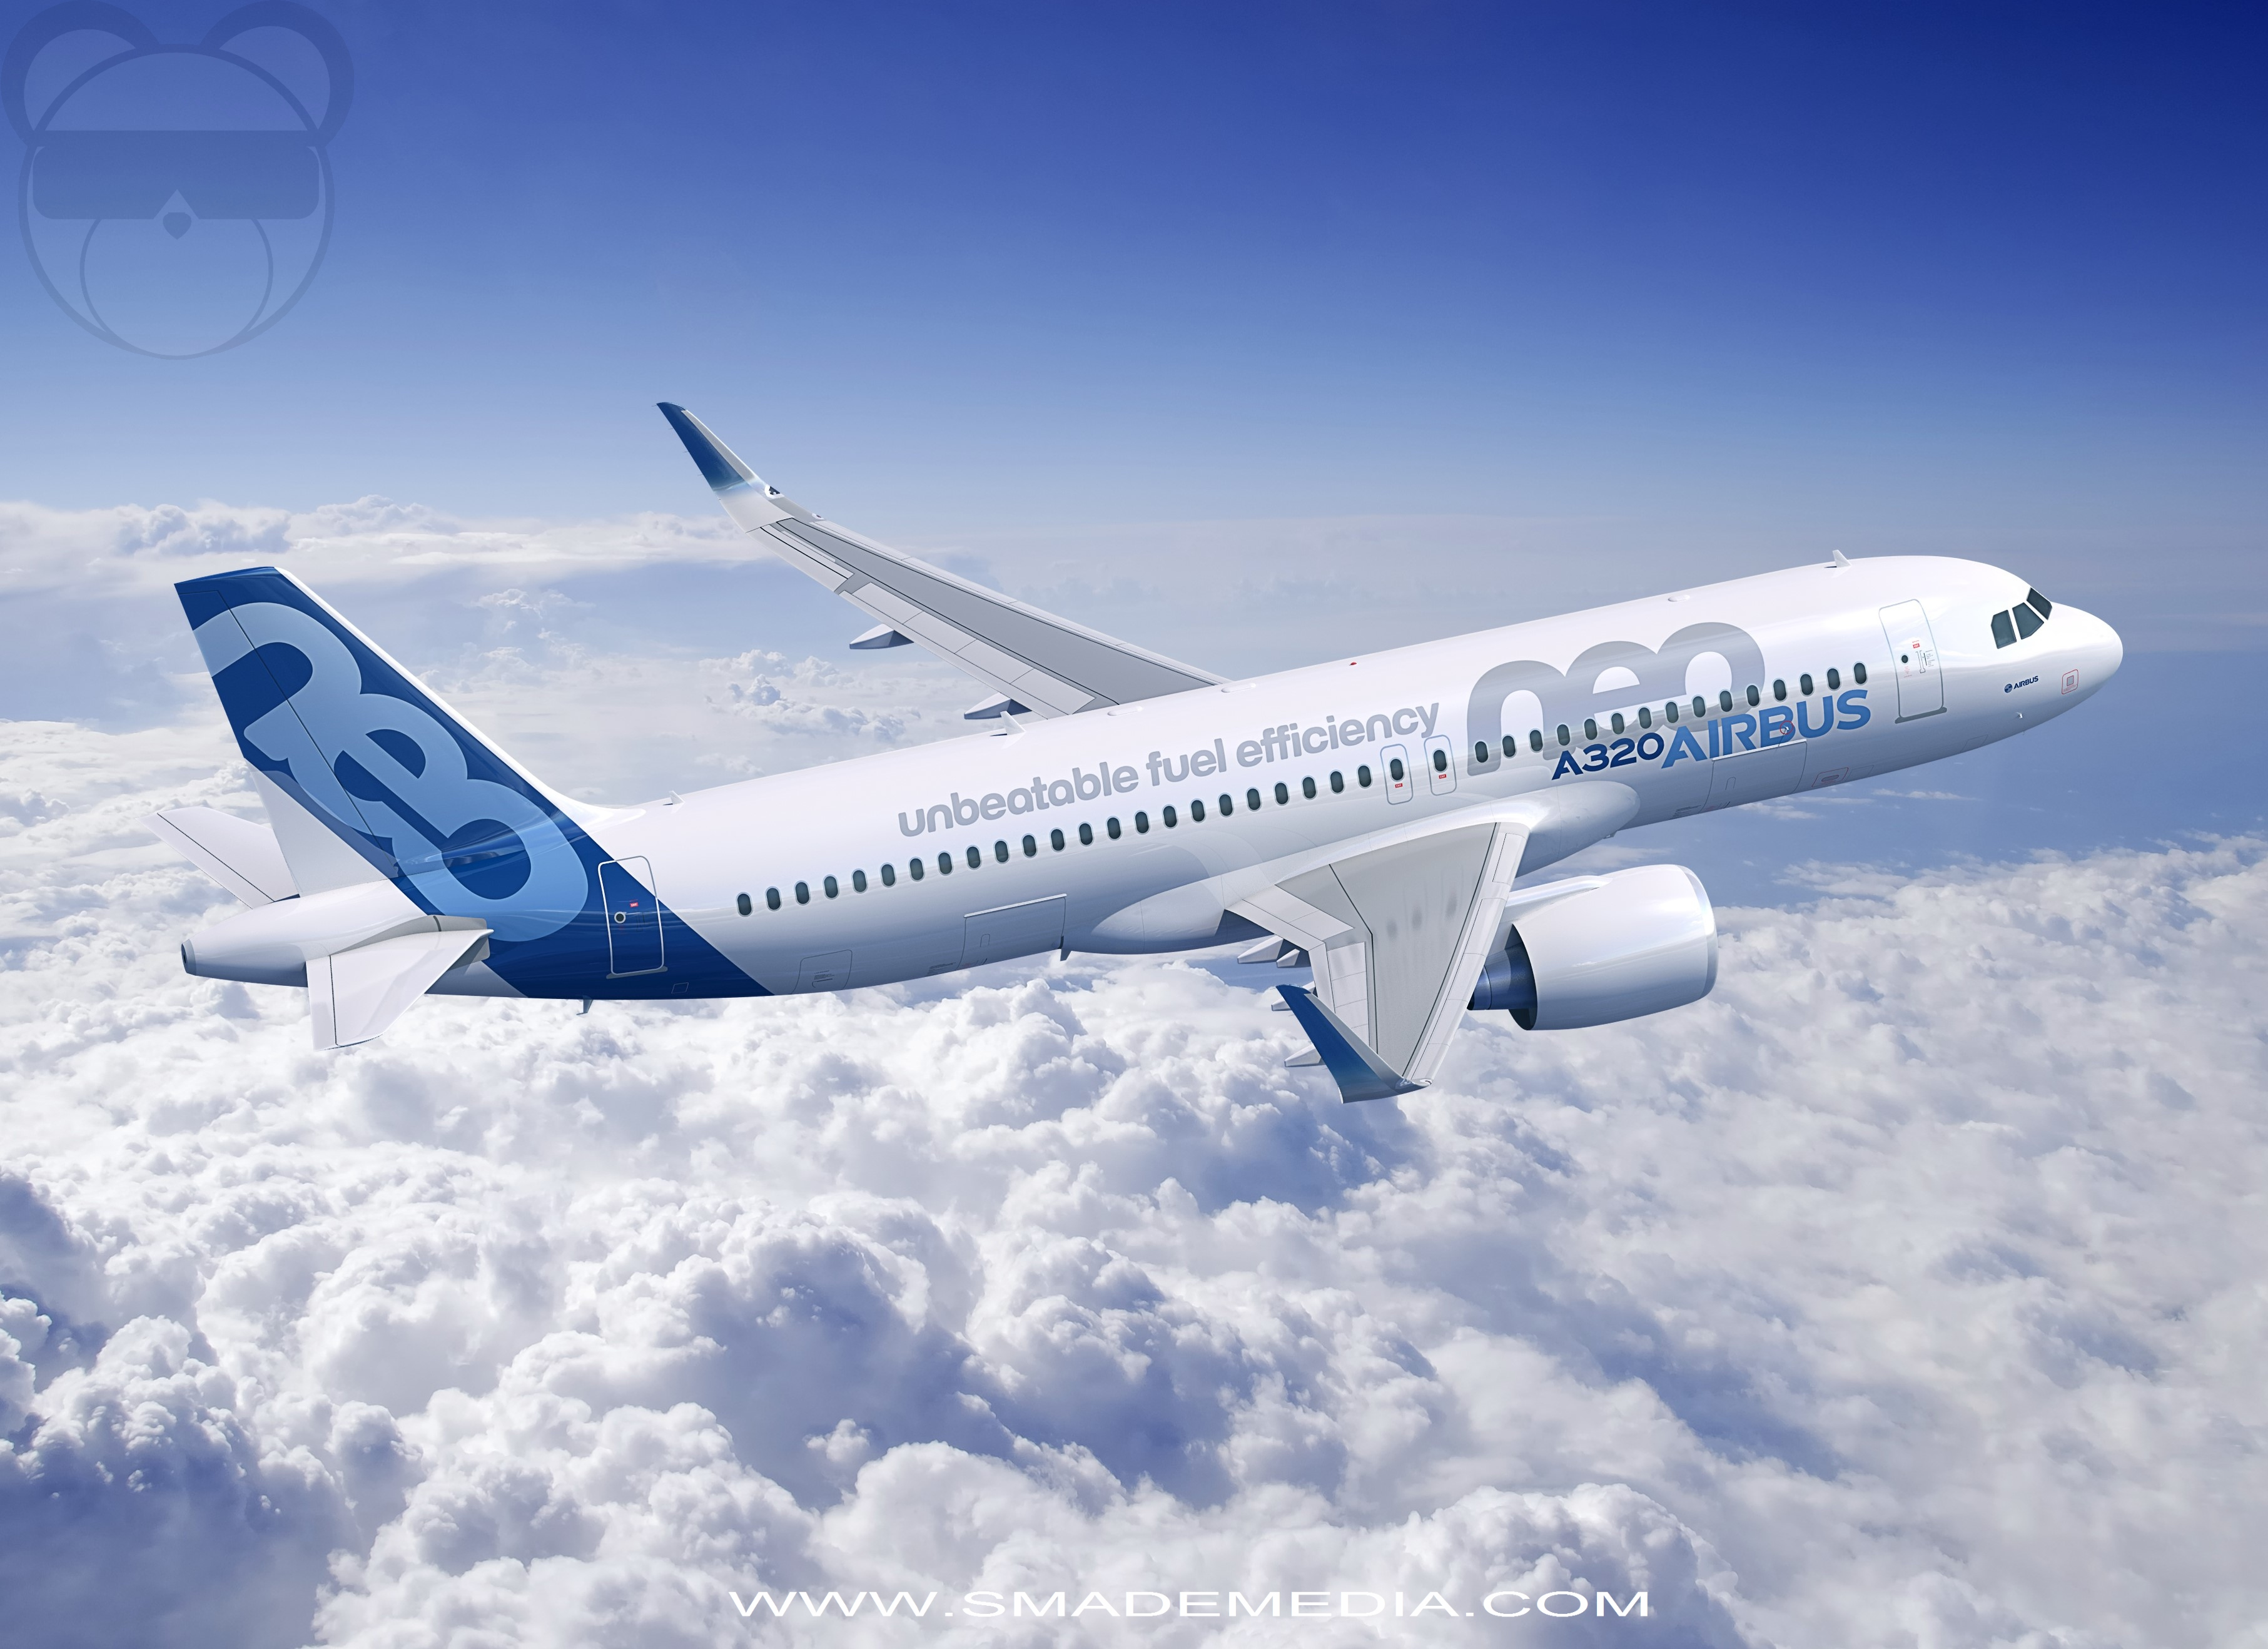 SMADE - Airbus A320neo Roll Out - WWW.SMADEMEDIA (3)